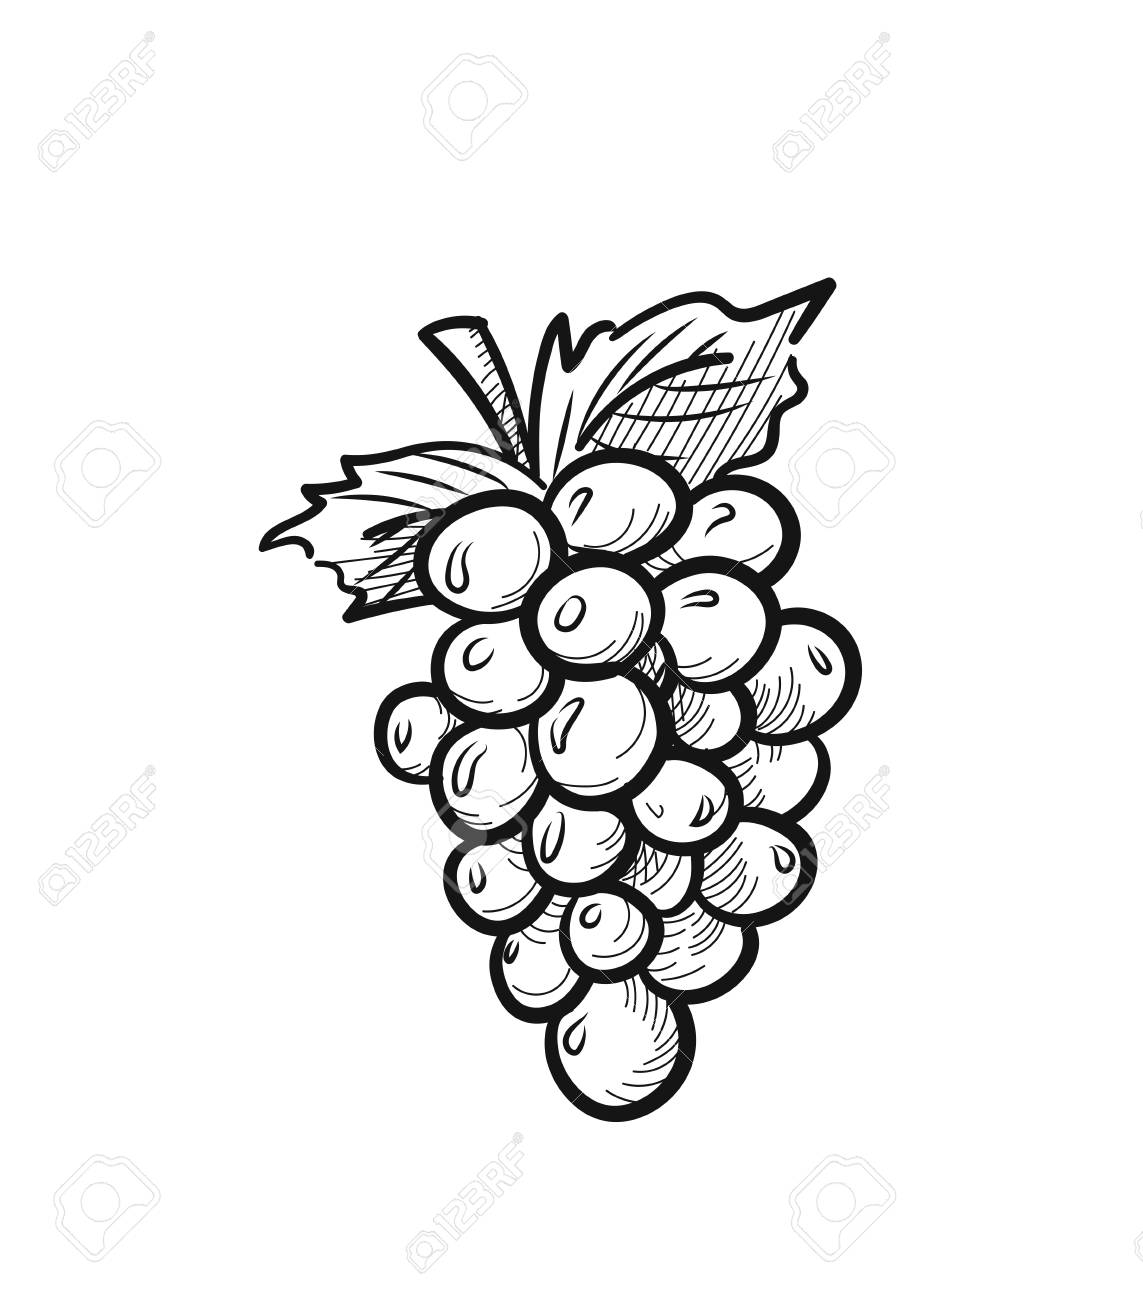 Bunch of grapes with leaf sketch icon for web, mobile and infographics. Hand drawn bunch of grapes vector icon isolated on white background. - 95847519